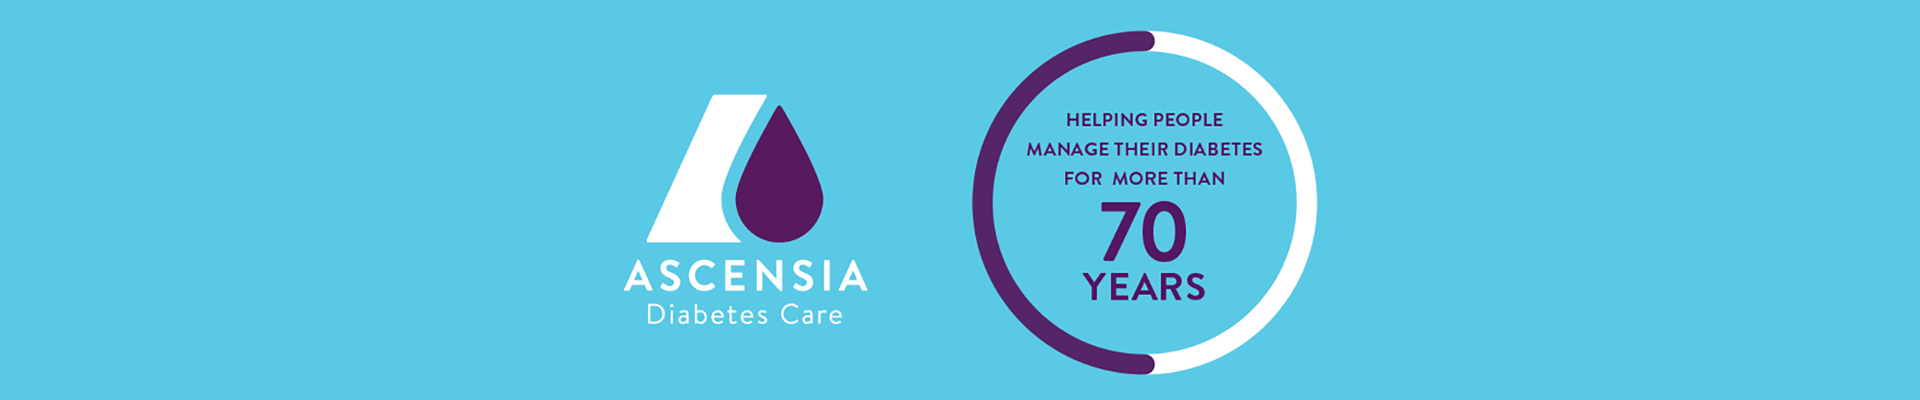 Ascensia Diabetes Care helping people manage their diabetes for more than 70 years